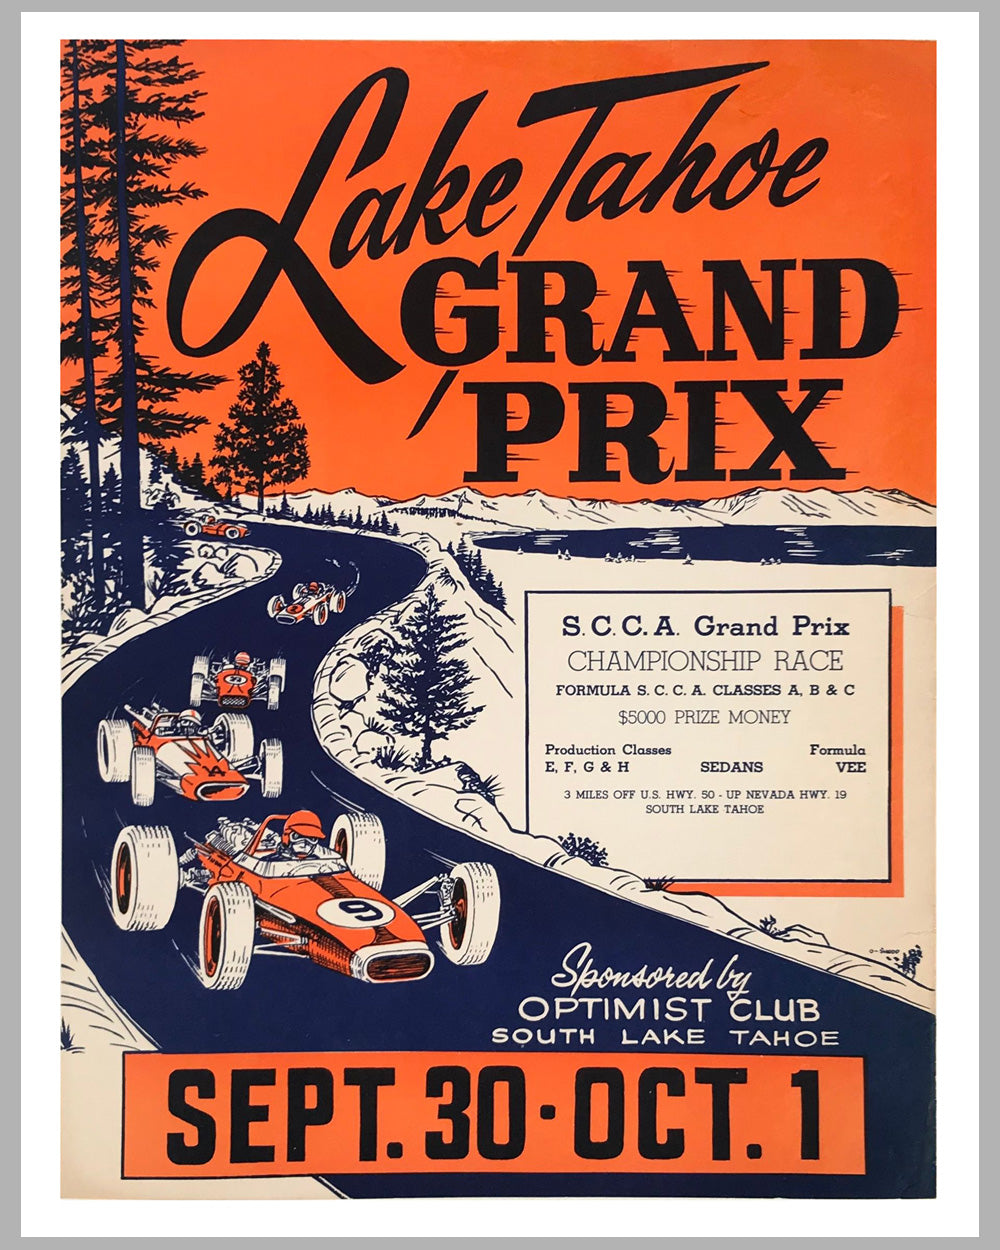 Lake Tahoe Grand Prix, 1967 original advertising poster